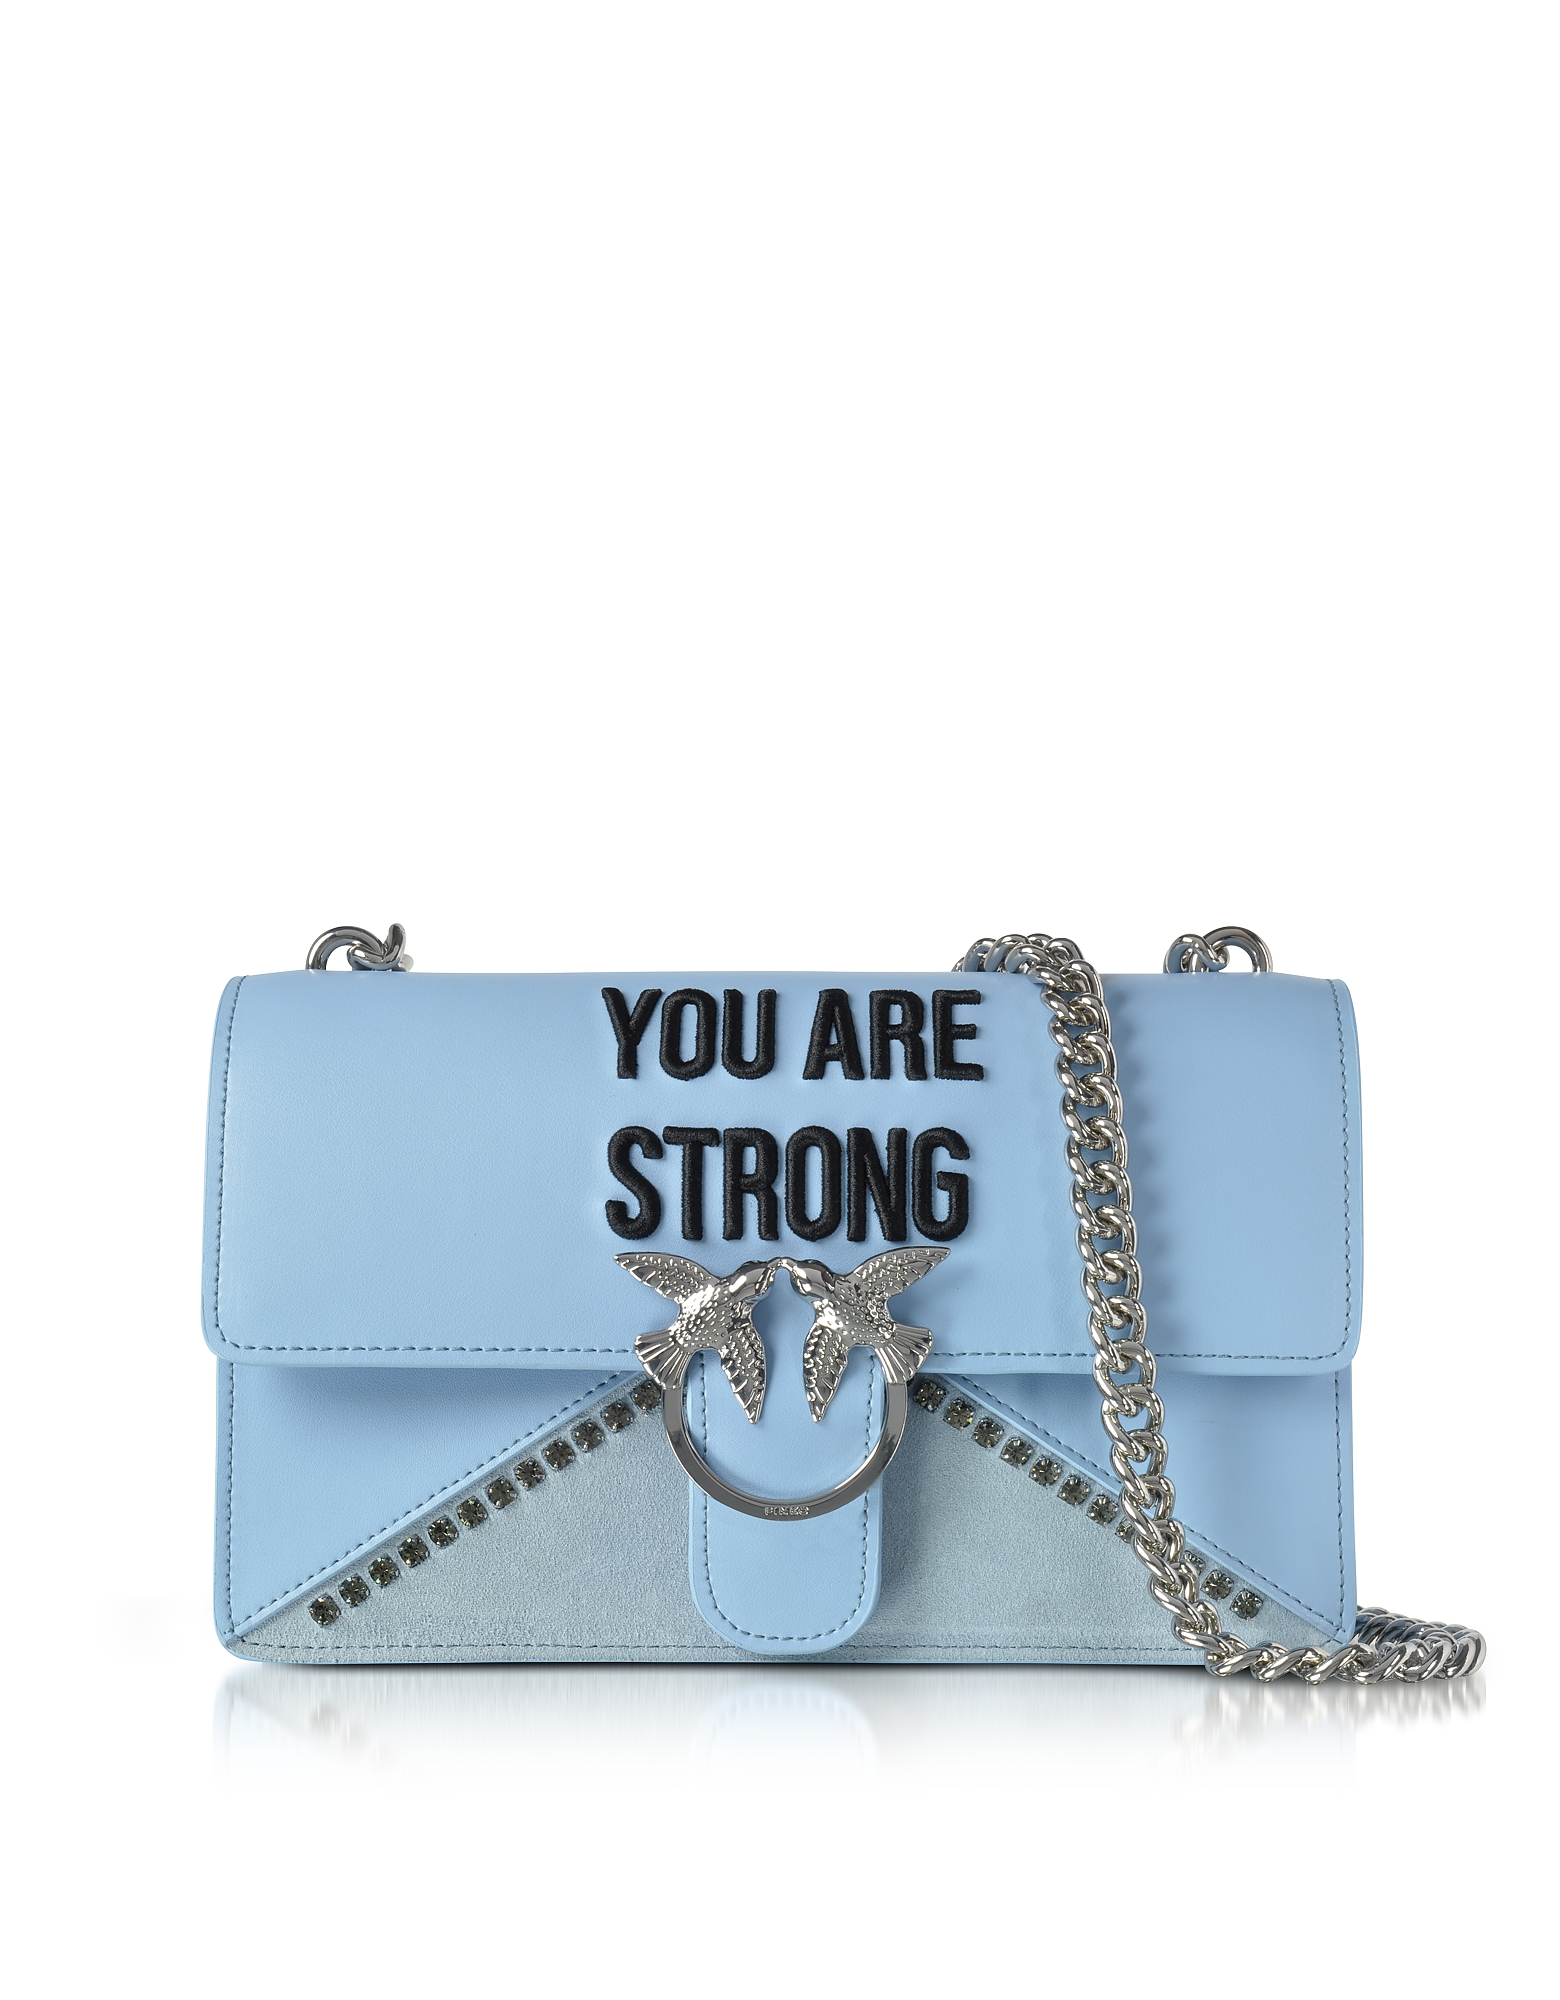 Pinko Handbags, Love Strong Light Blue Eco Leather Shoulder Bag